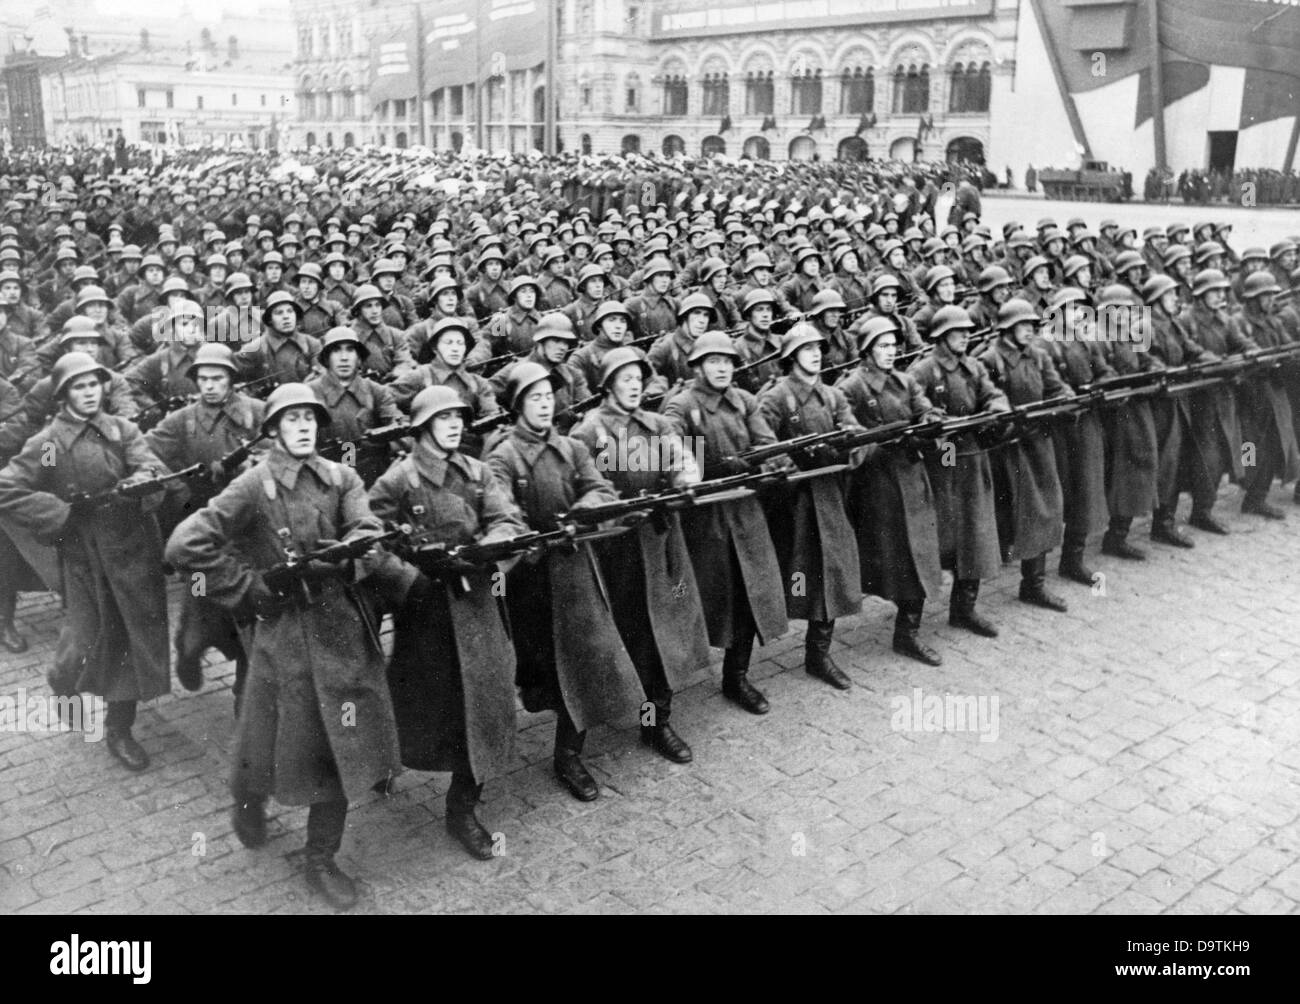 View of a parade of the Red Army on Red Square in Moscow in the Soviet Union. Date unknown. The Nazi Propaganda! - Stock Image